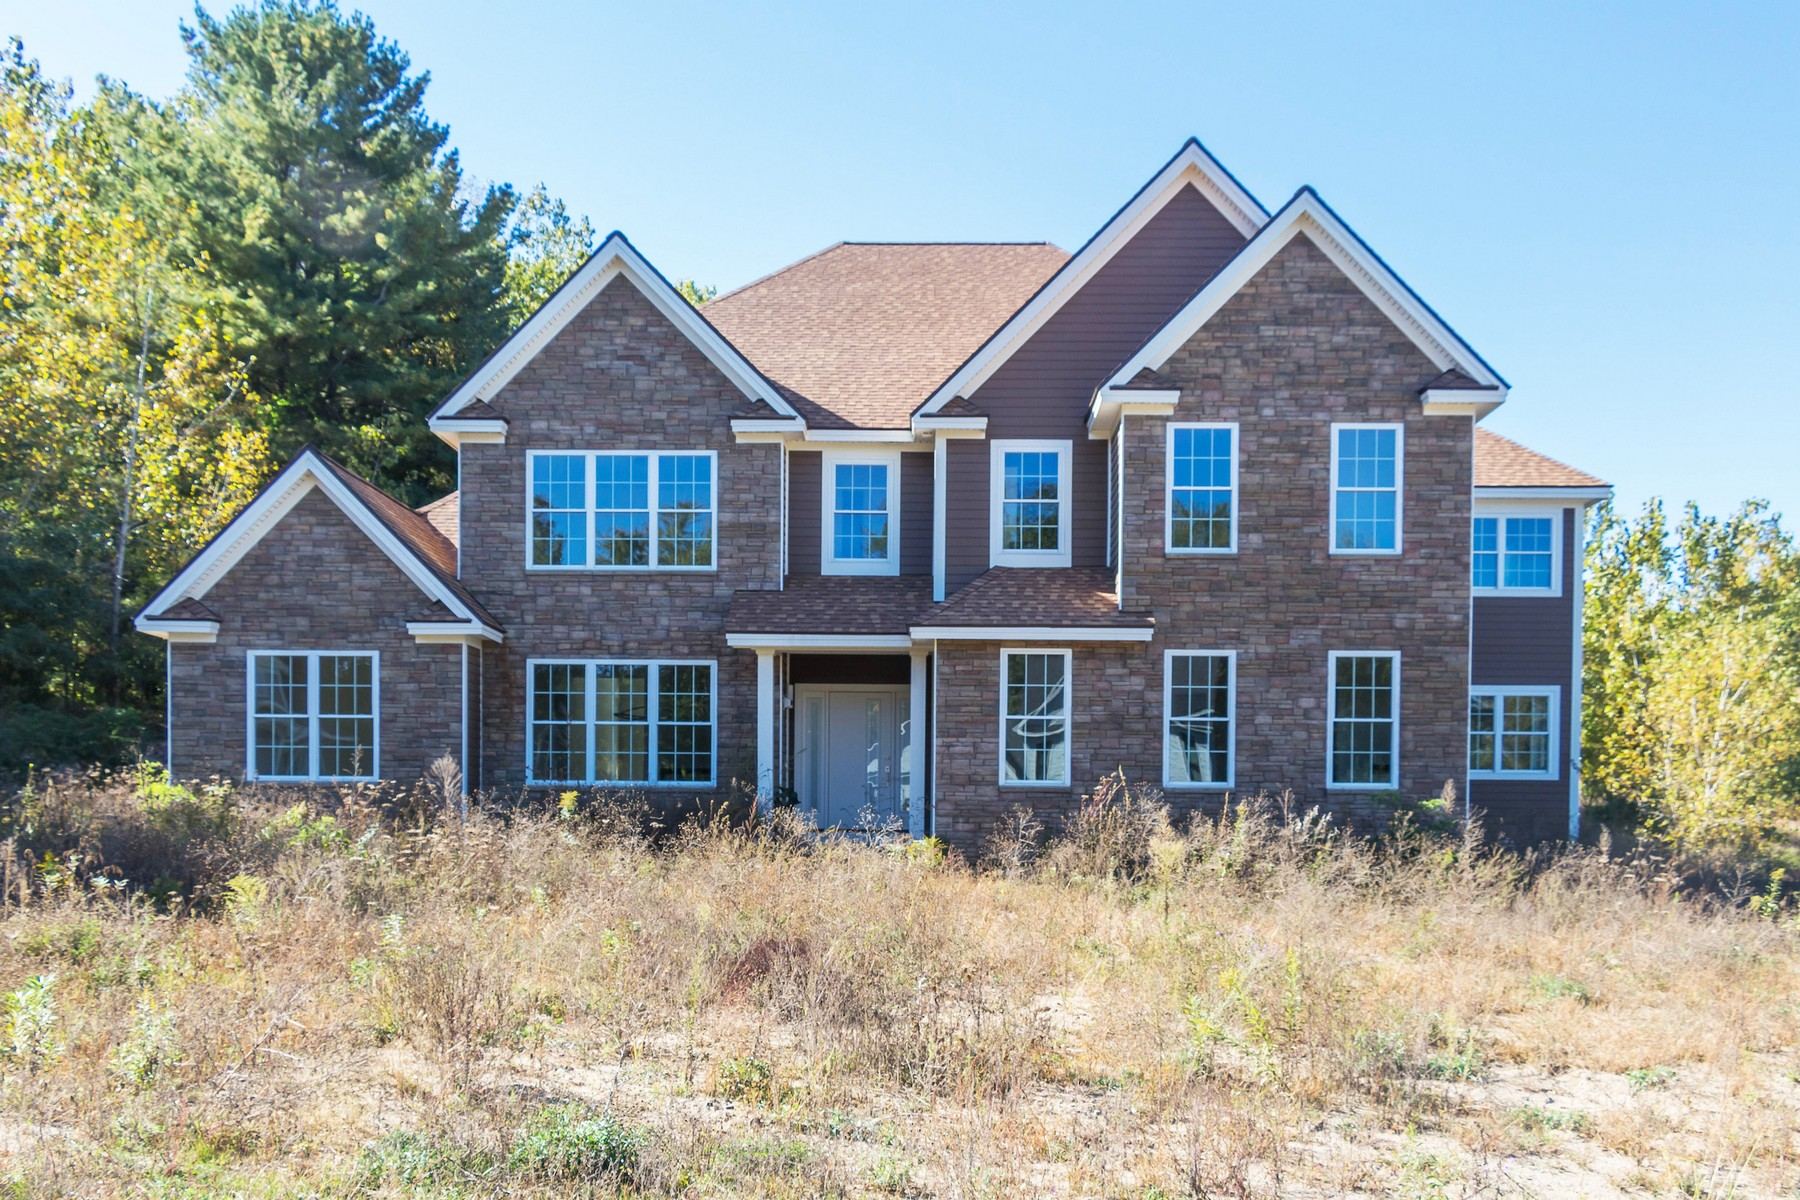 Maison unifamiliale pour l Vente à New Construction Without the Wait 909 Sussex Ct Guilderland, New York 12084 États-Unis